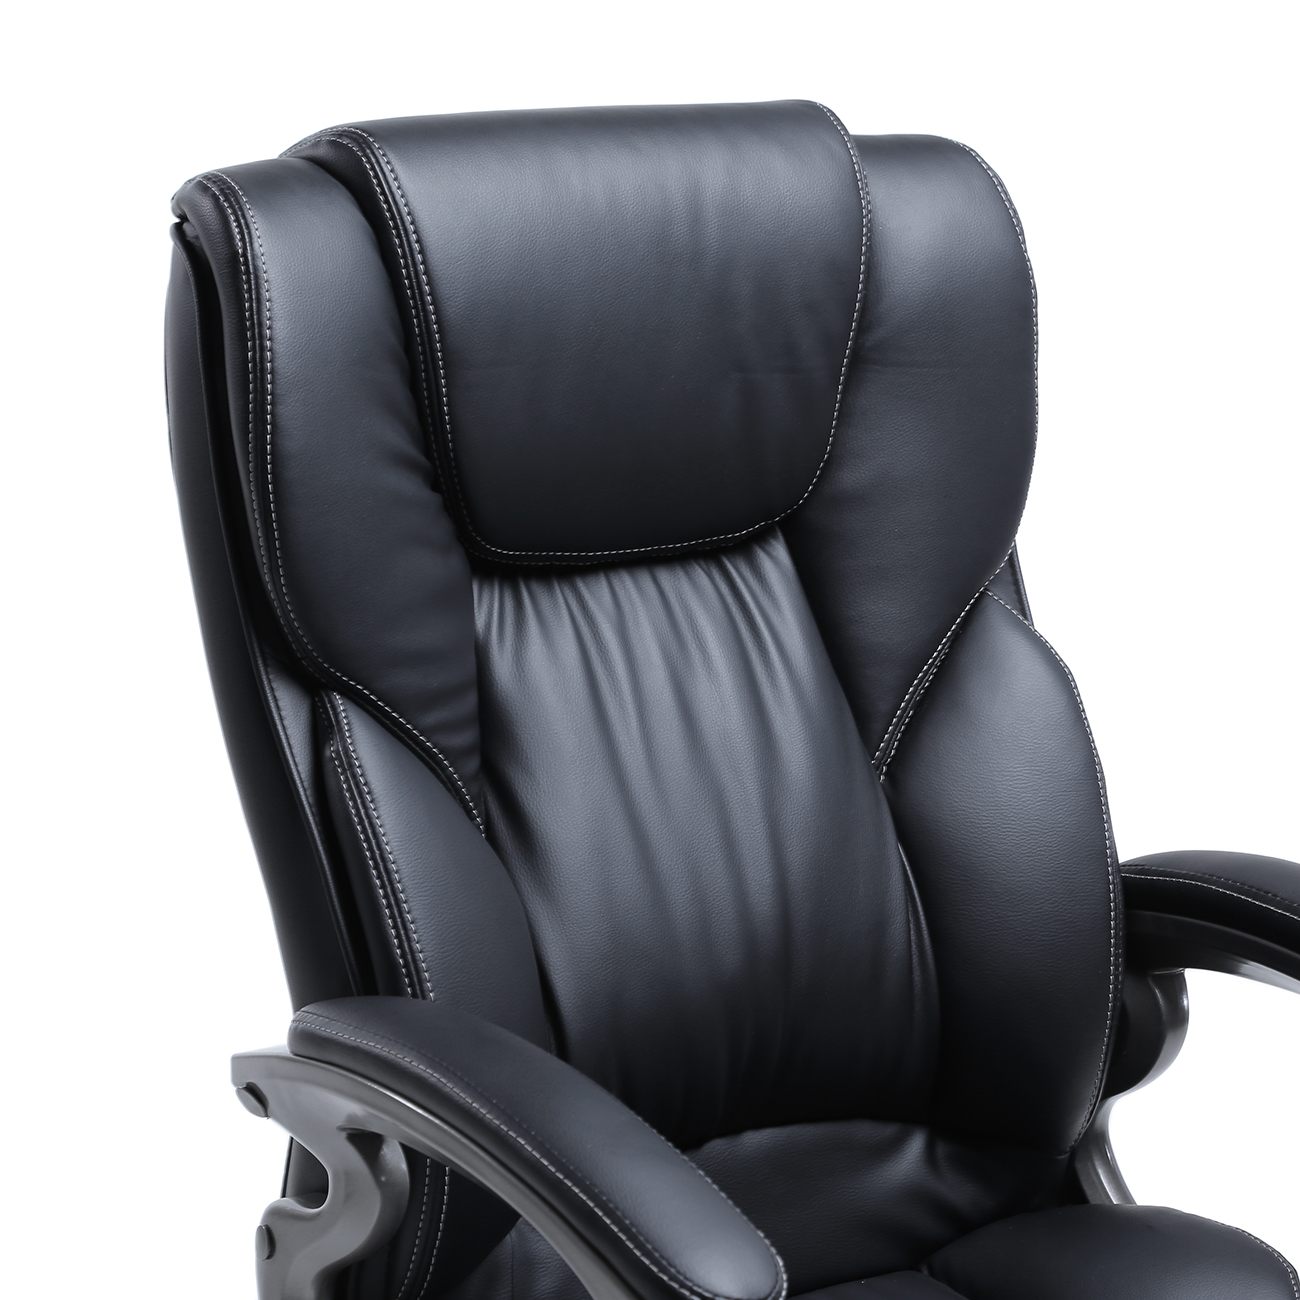 ergonomic office chair ebay swinging with stand high back pu leather executive desk